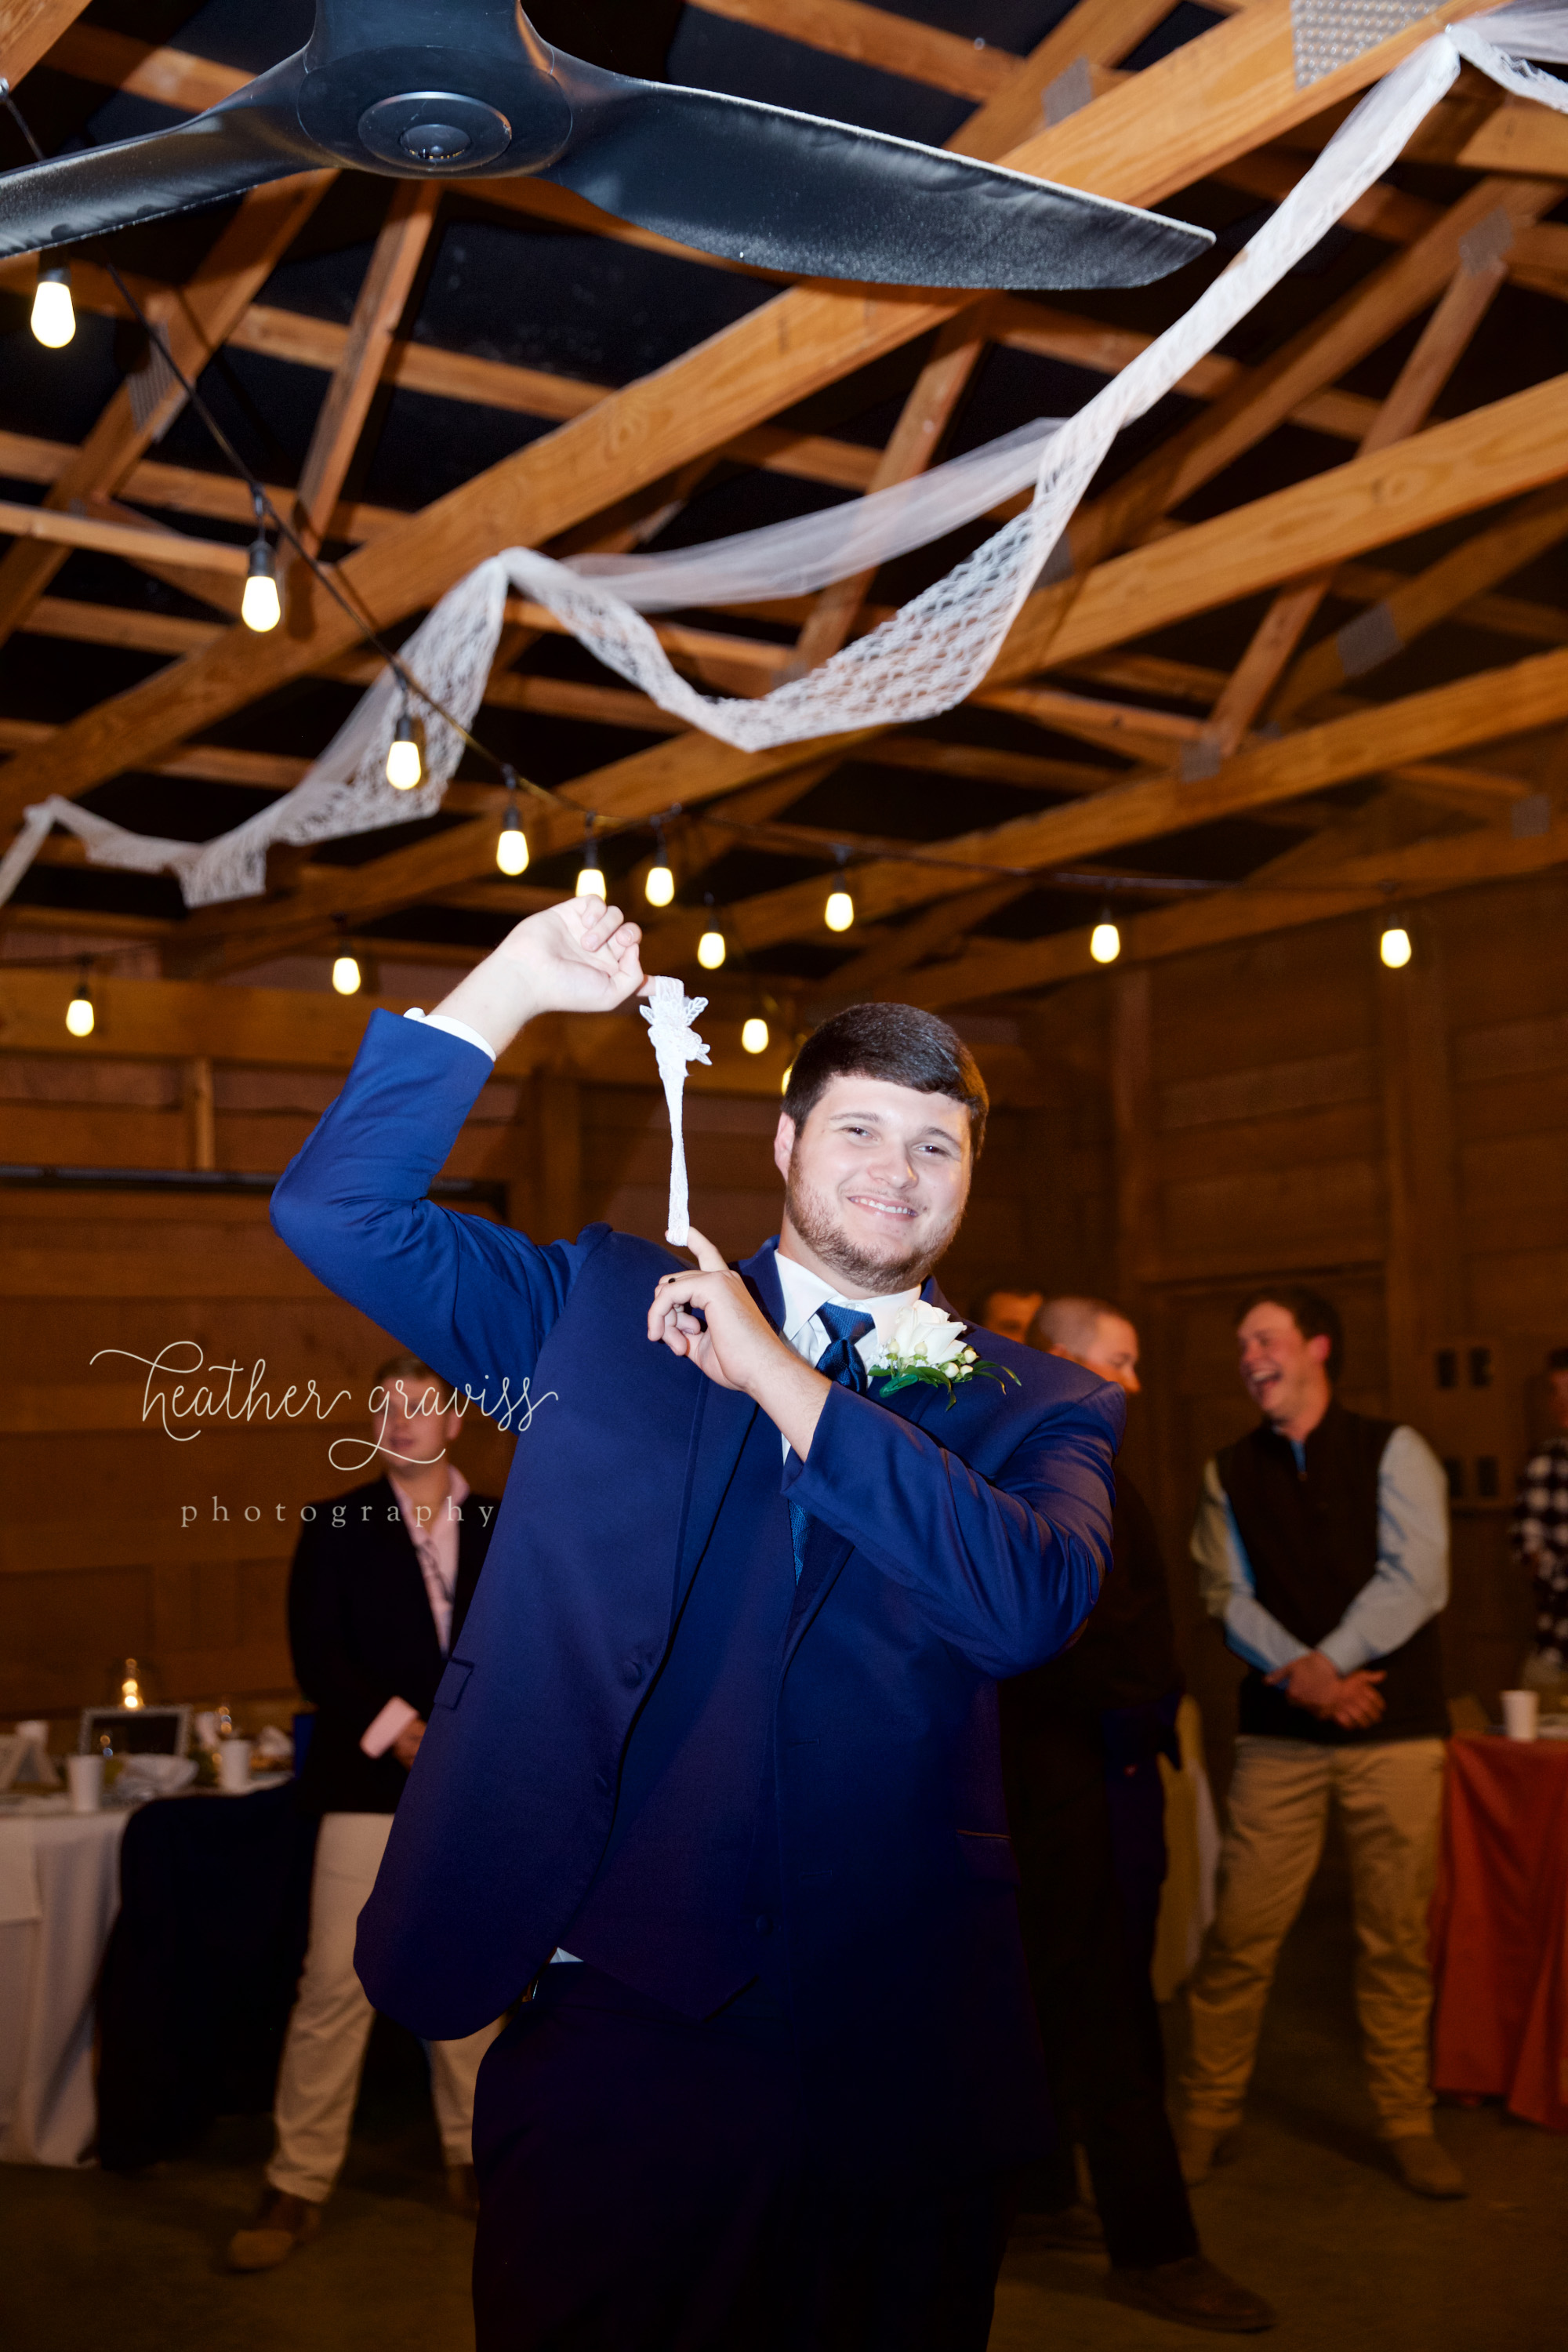 47-throwing-the-garter.jpg